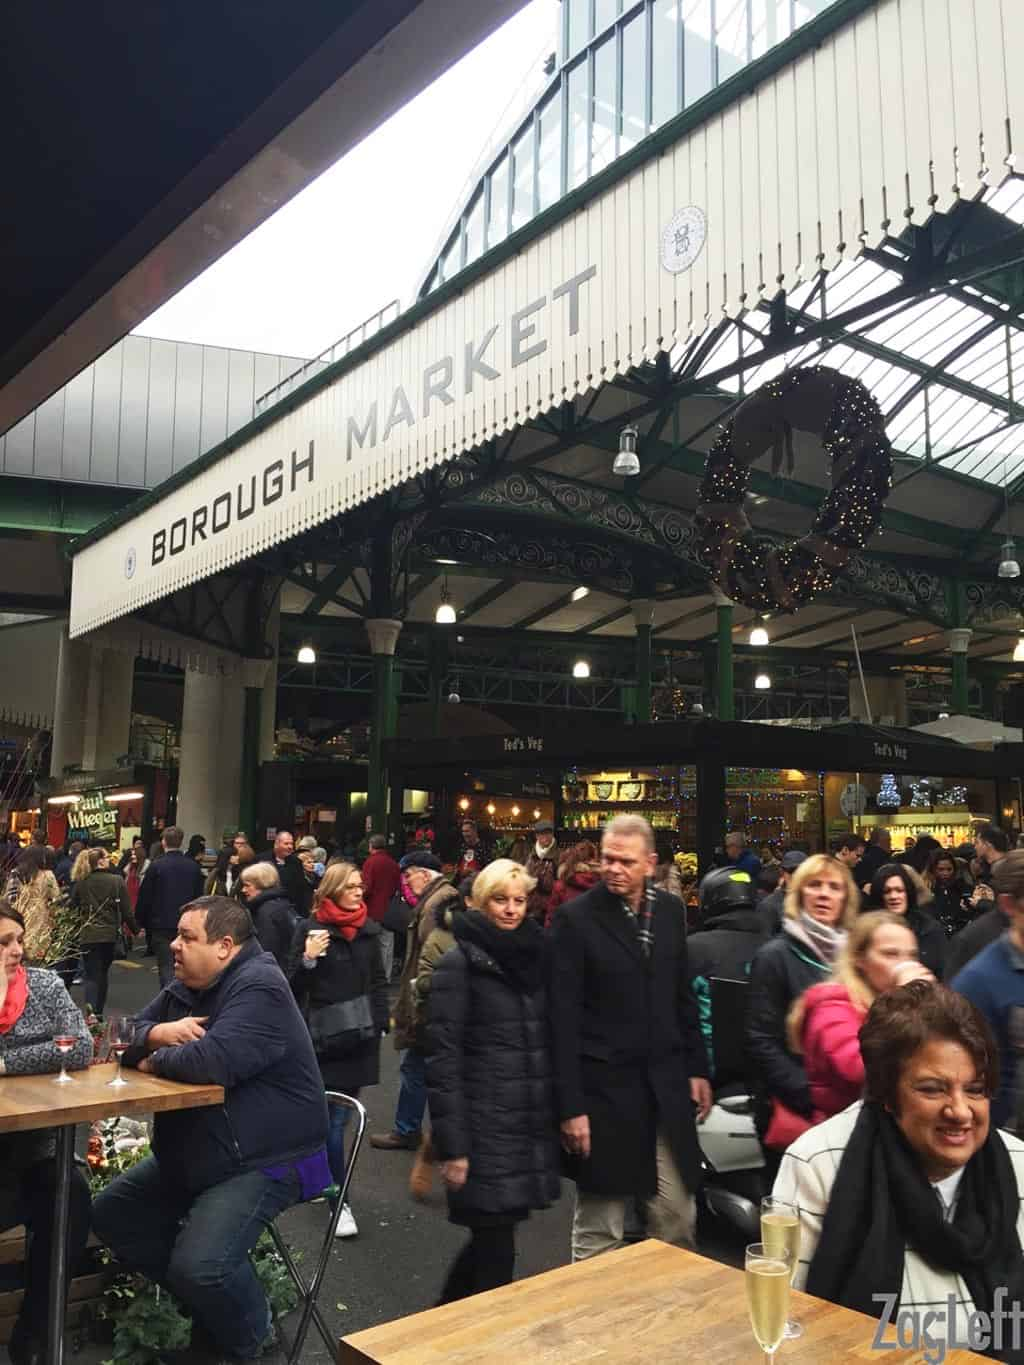 Our guide to visiting and exploring the best London markets. From Borough Market to Greenwich Market we're showing you our favorites. The London markets are fun places to shop for food, drinks, clothes, antiques and other merchandise. There's something for everyone! | zagleft.com